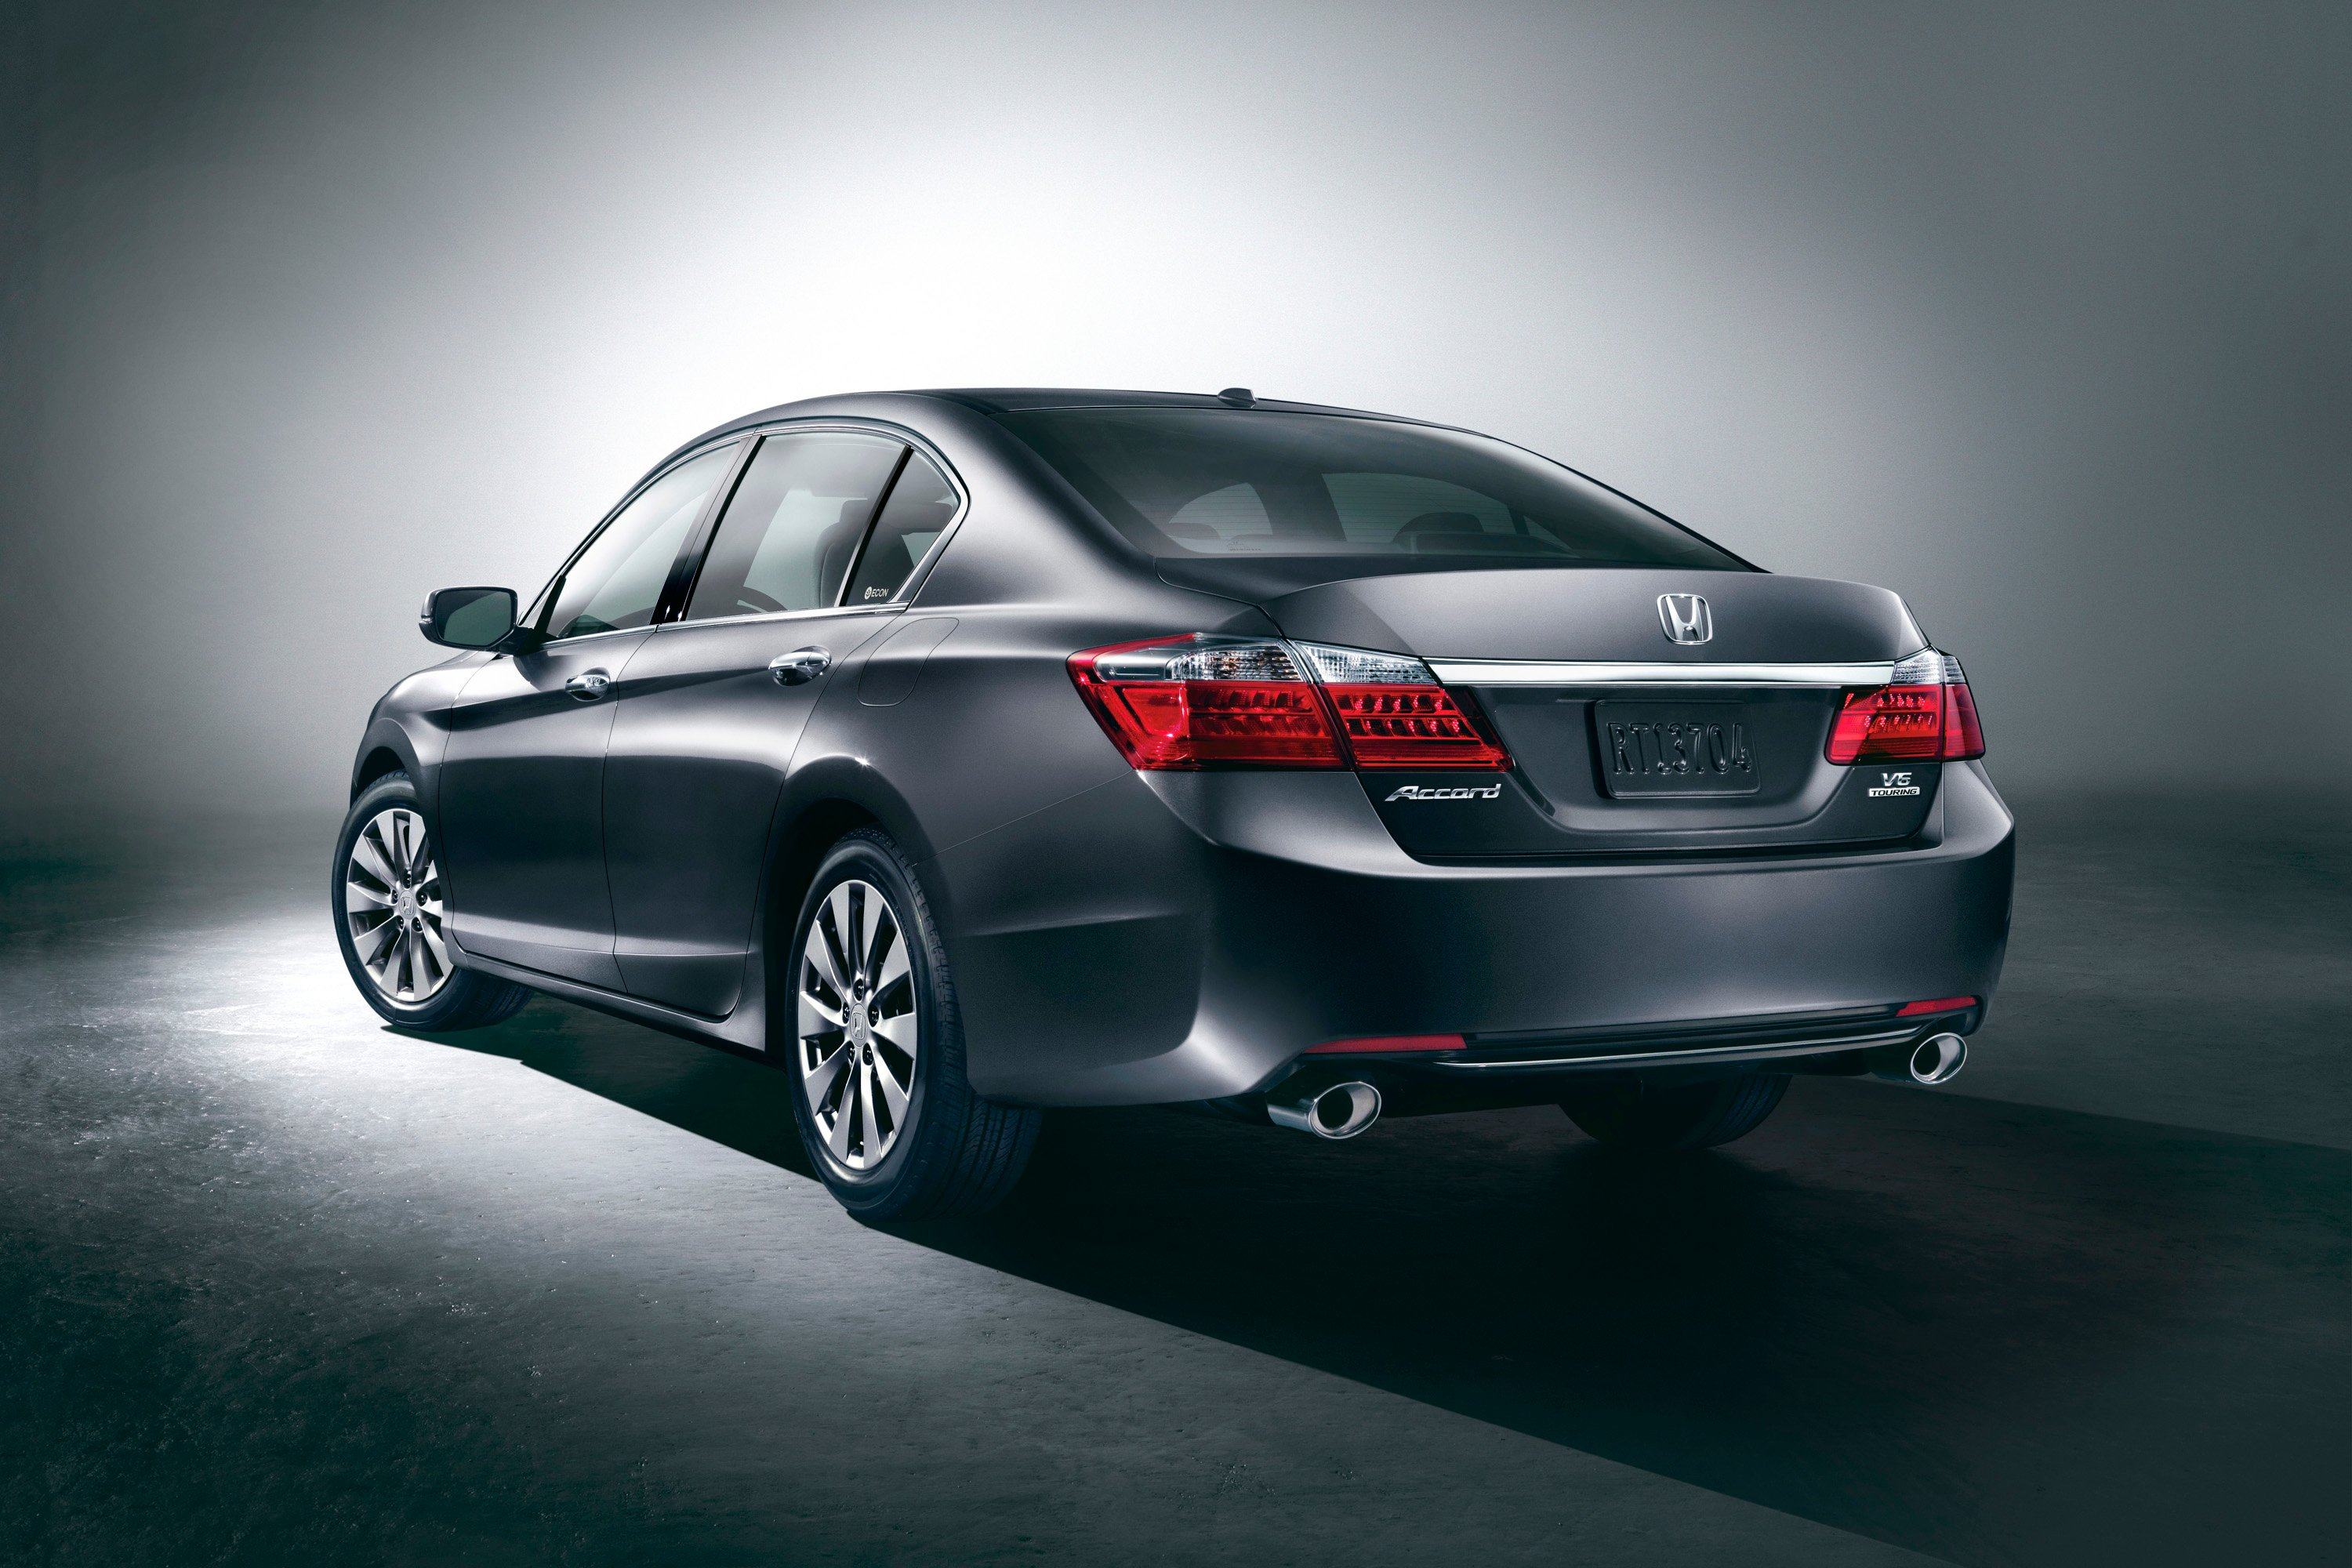 2013 honda accord more bulgogi than tonkatsu the truth about cars for Honda accord used 2013